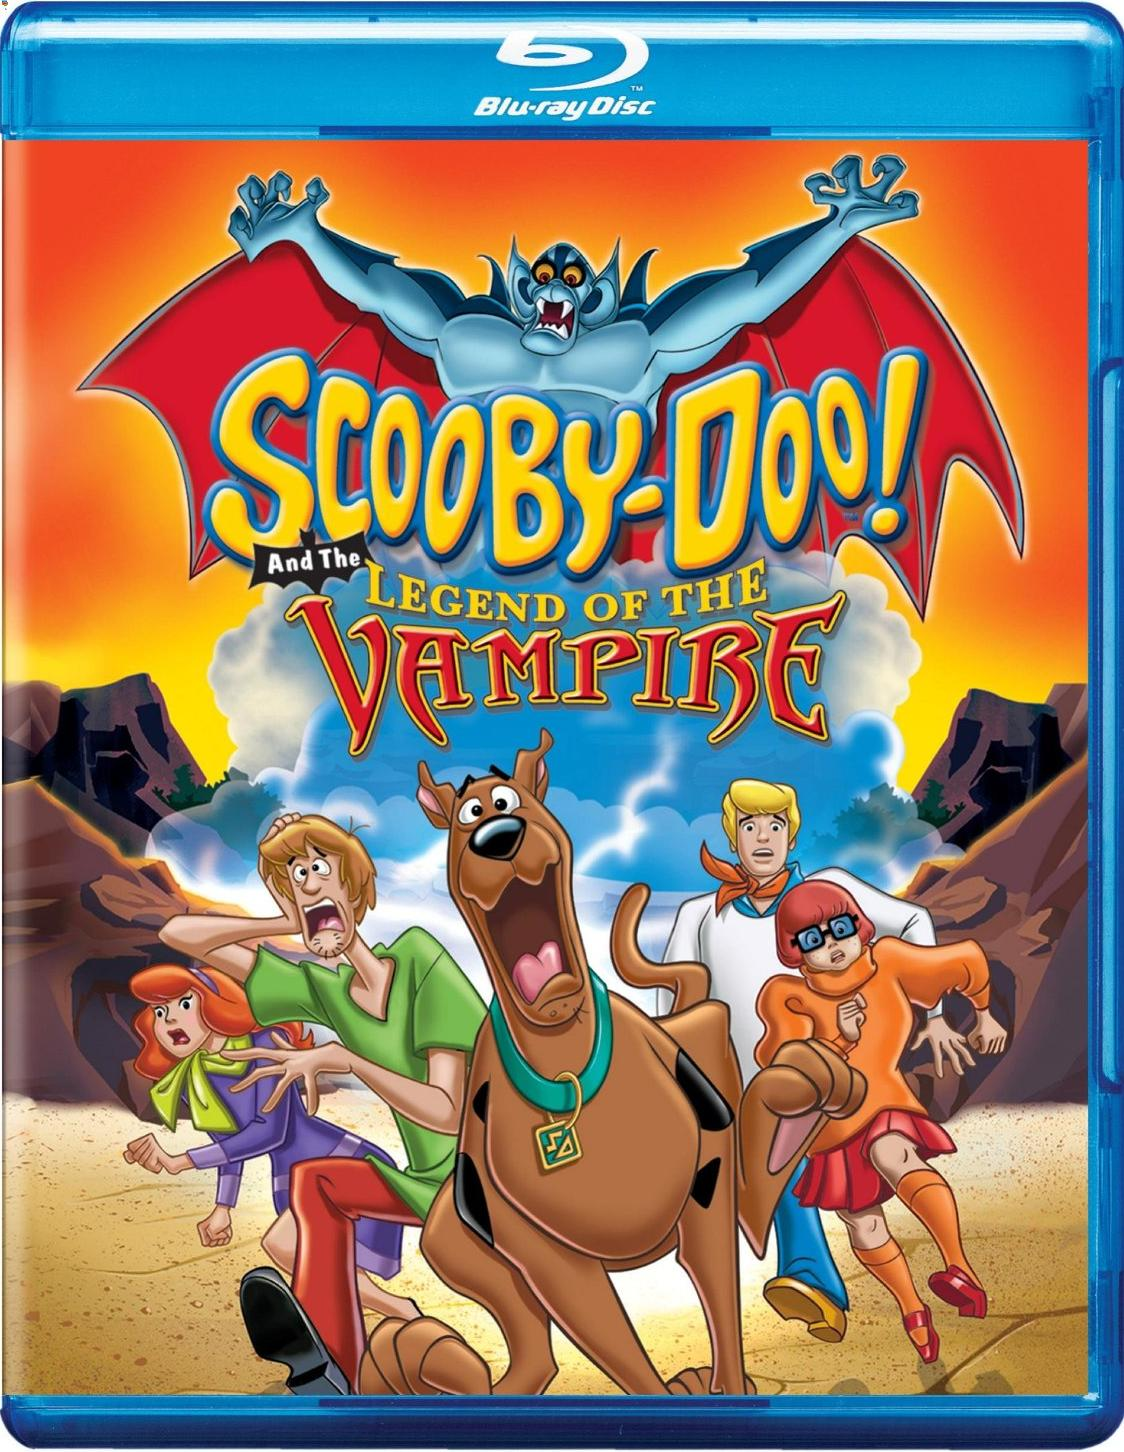 Four More Scooby Titles On Blu-Ray